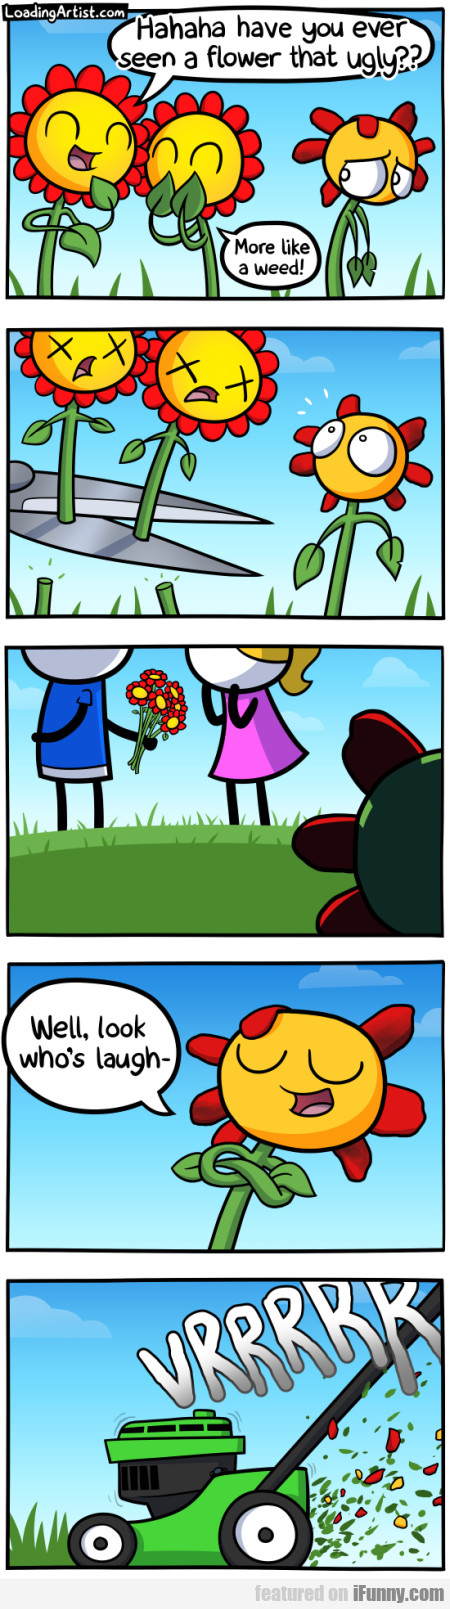 Hahaha Have You Ever Seen A Flower That Ugly...